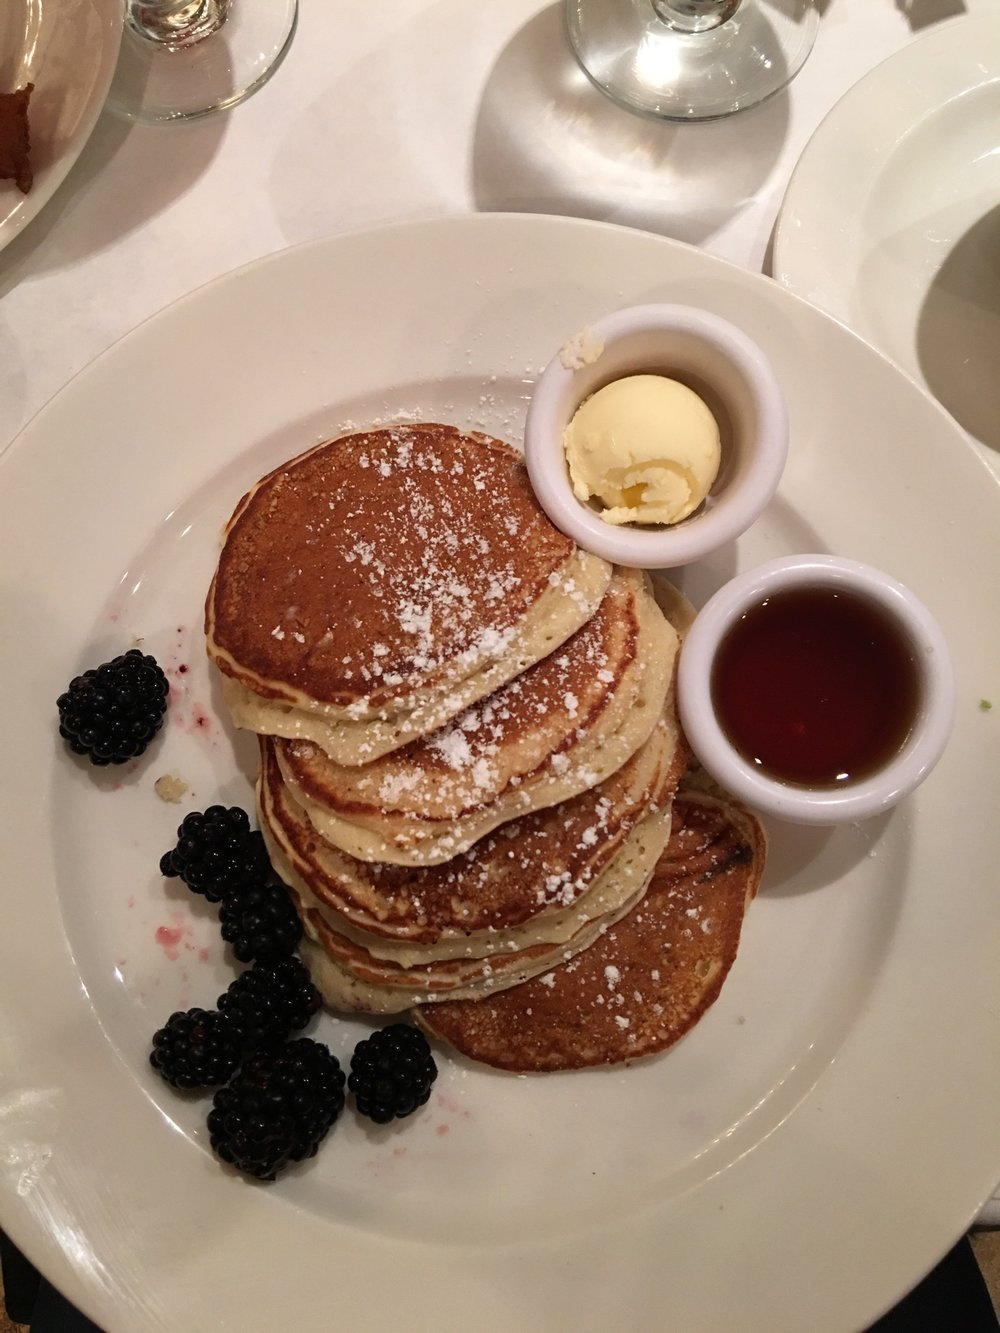 Lemon Ricotta Pancakes at SaraBeth's